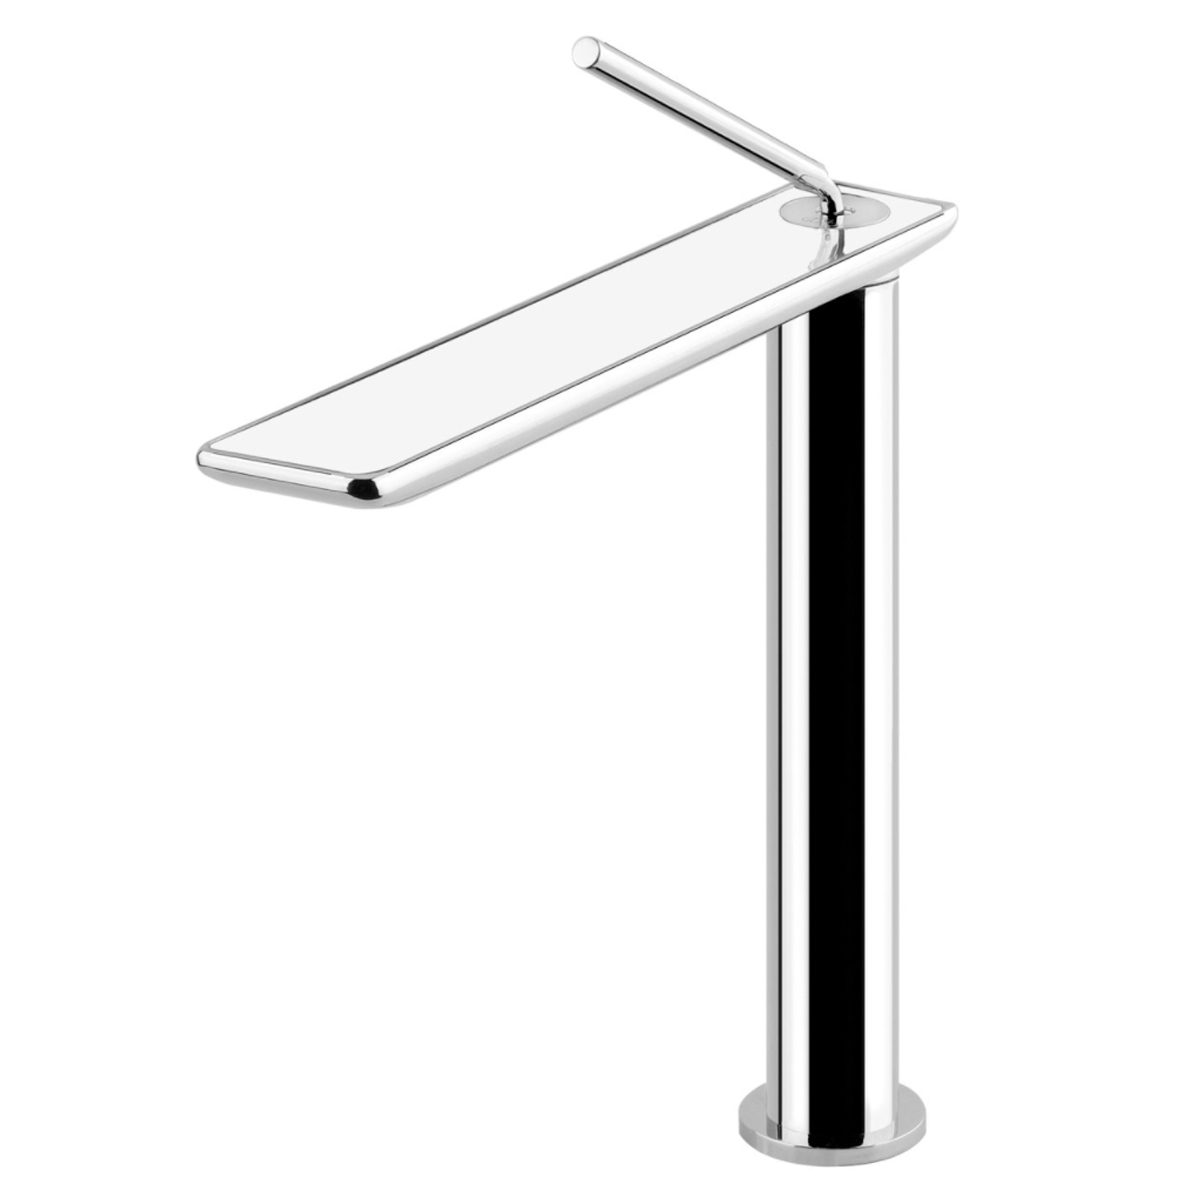 Gessi 38510 Ispa Kitchen Mixer Tap